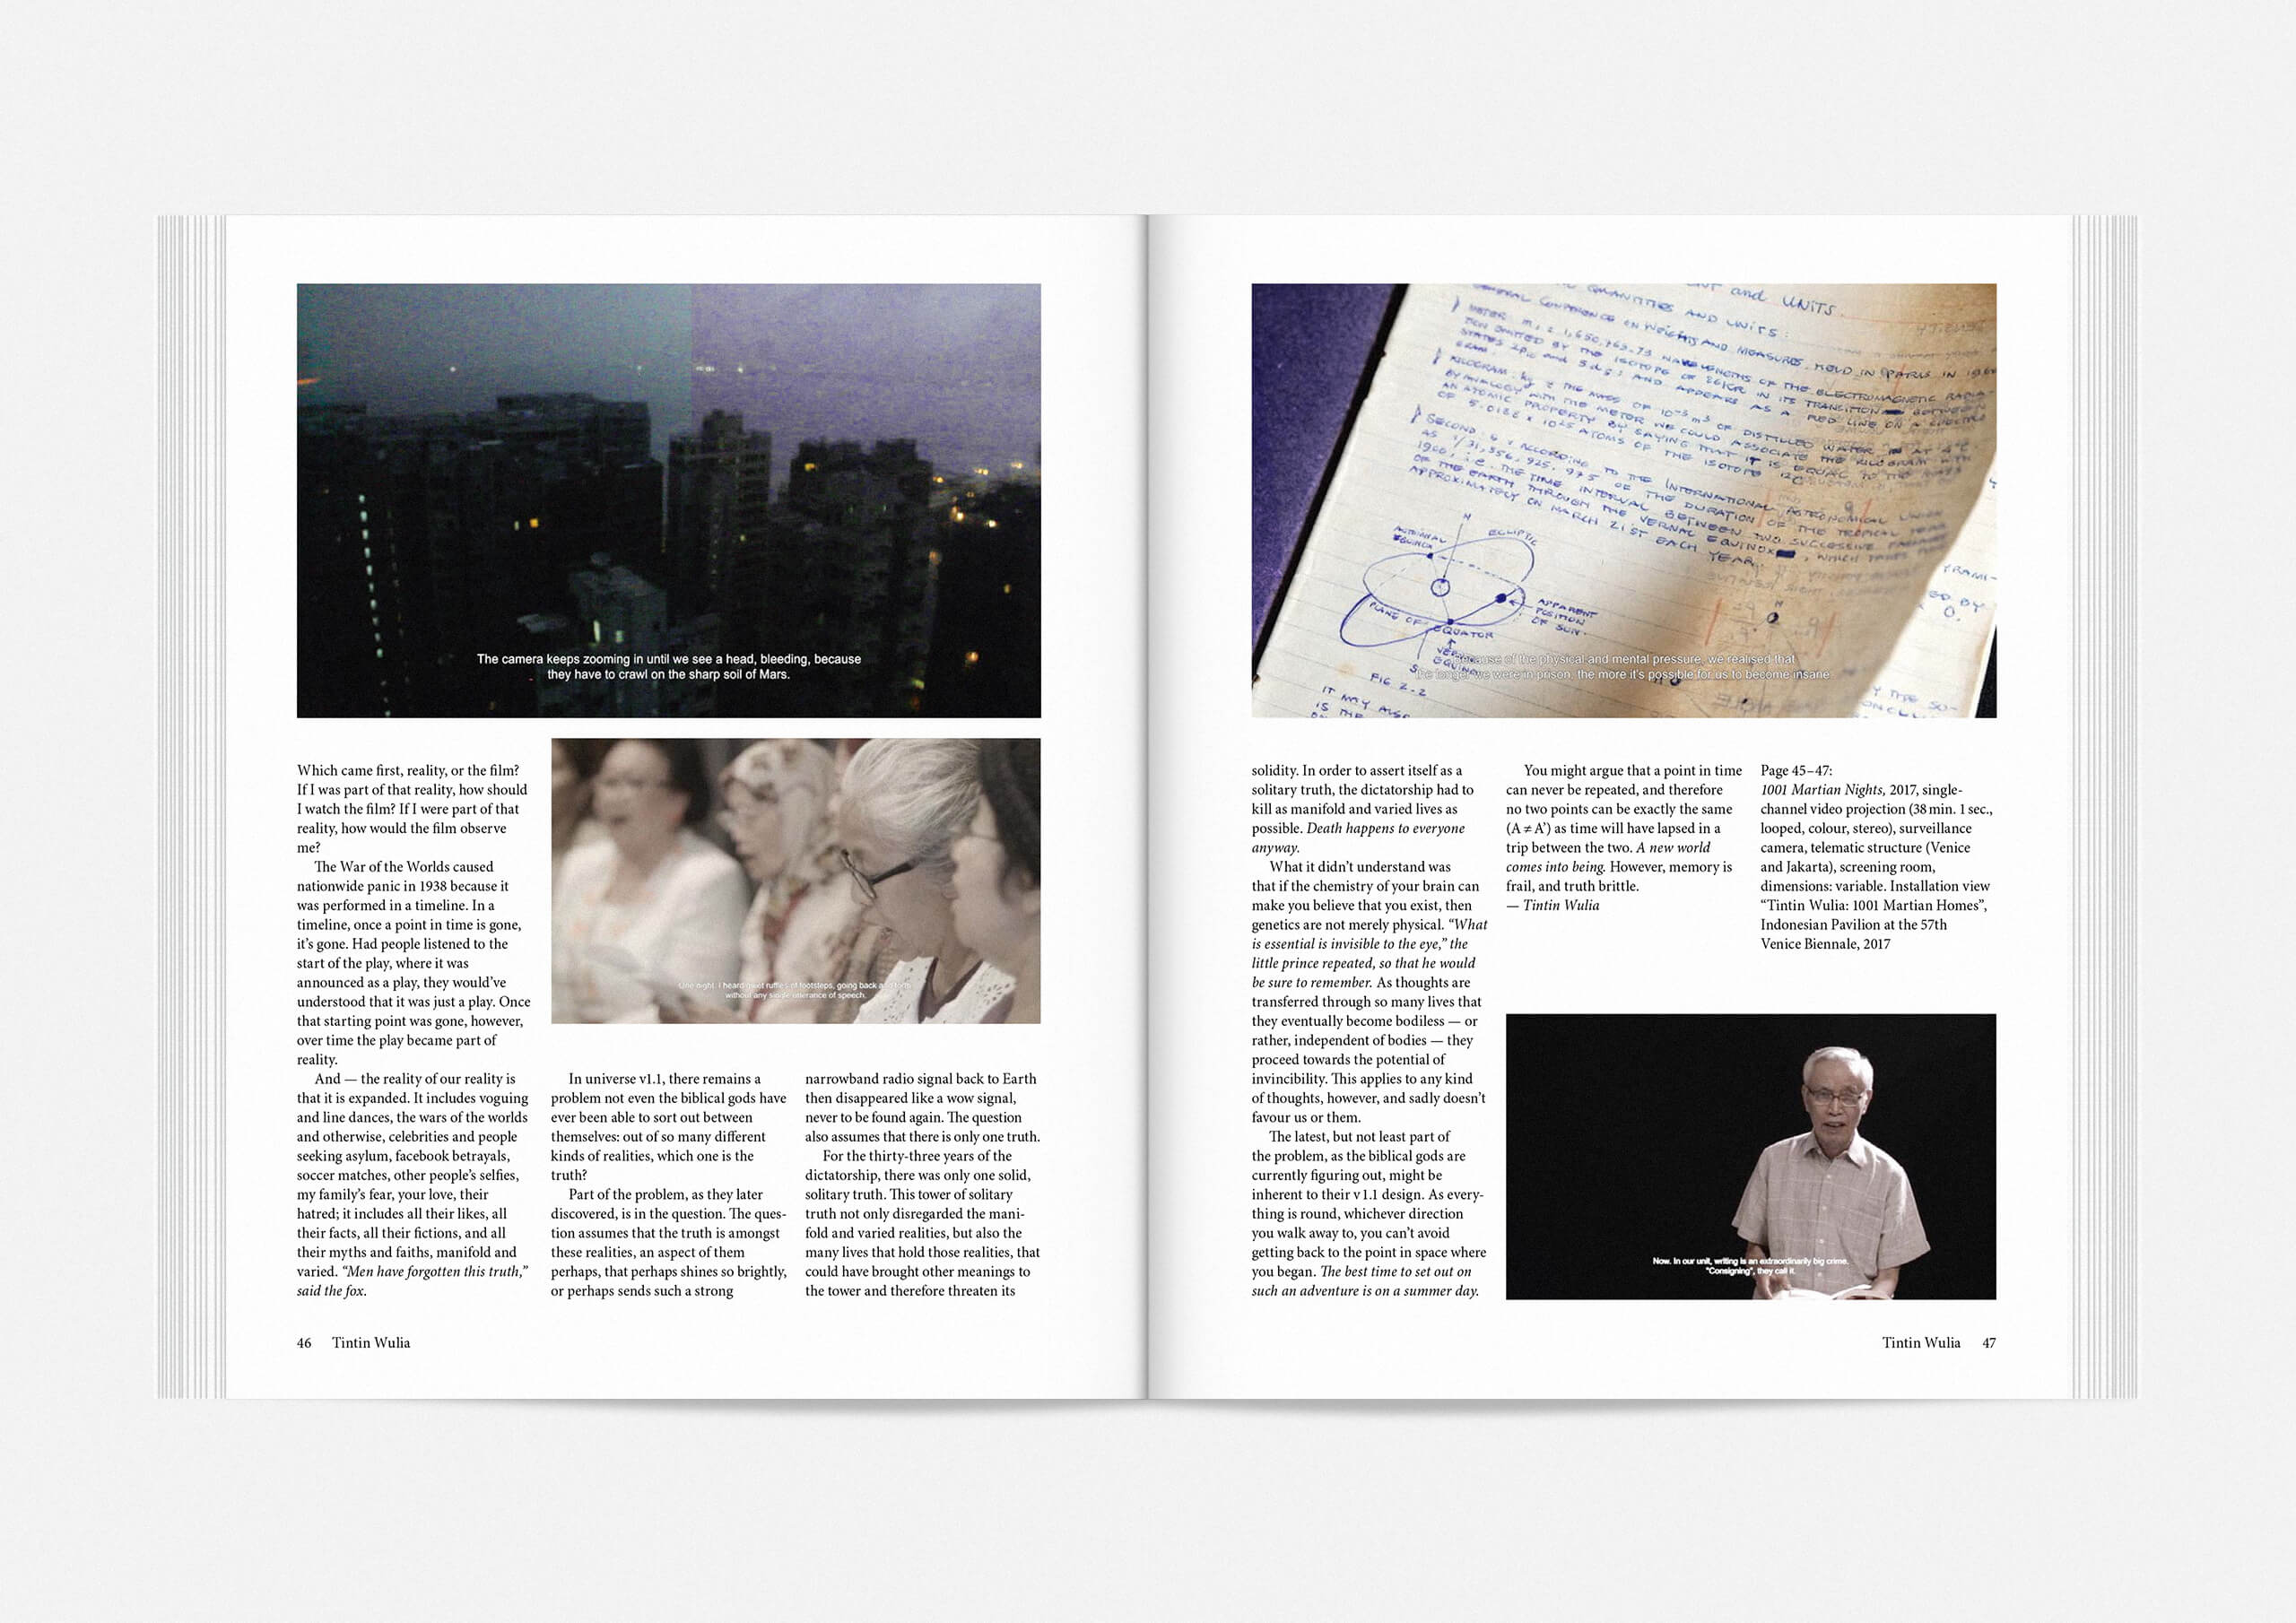 http://www.neuegestaltung.de/media/pages/clients/protocollum-issue-no-05/a7379911c2-1597415139/protocollum-5-page-4647-ng.jpg